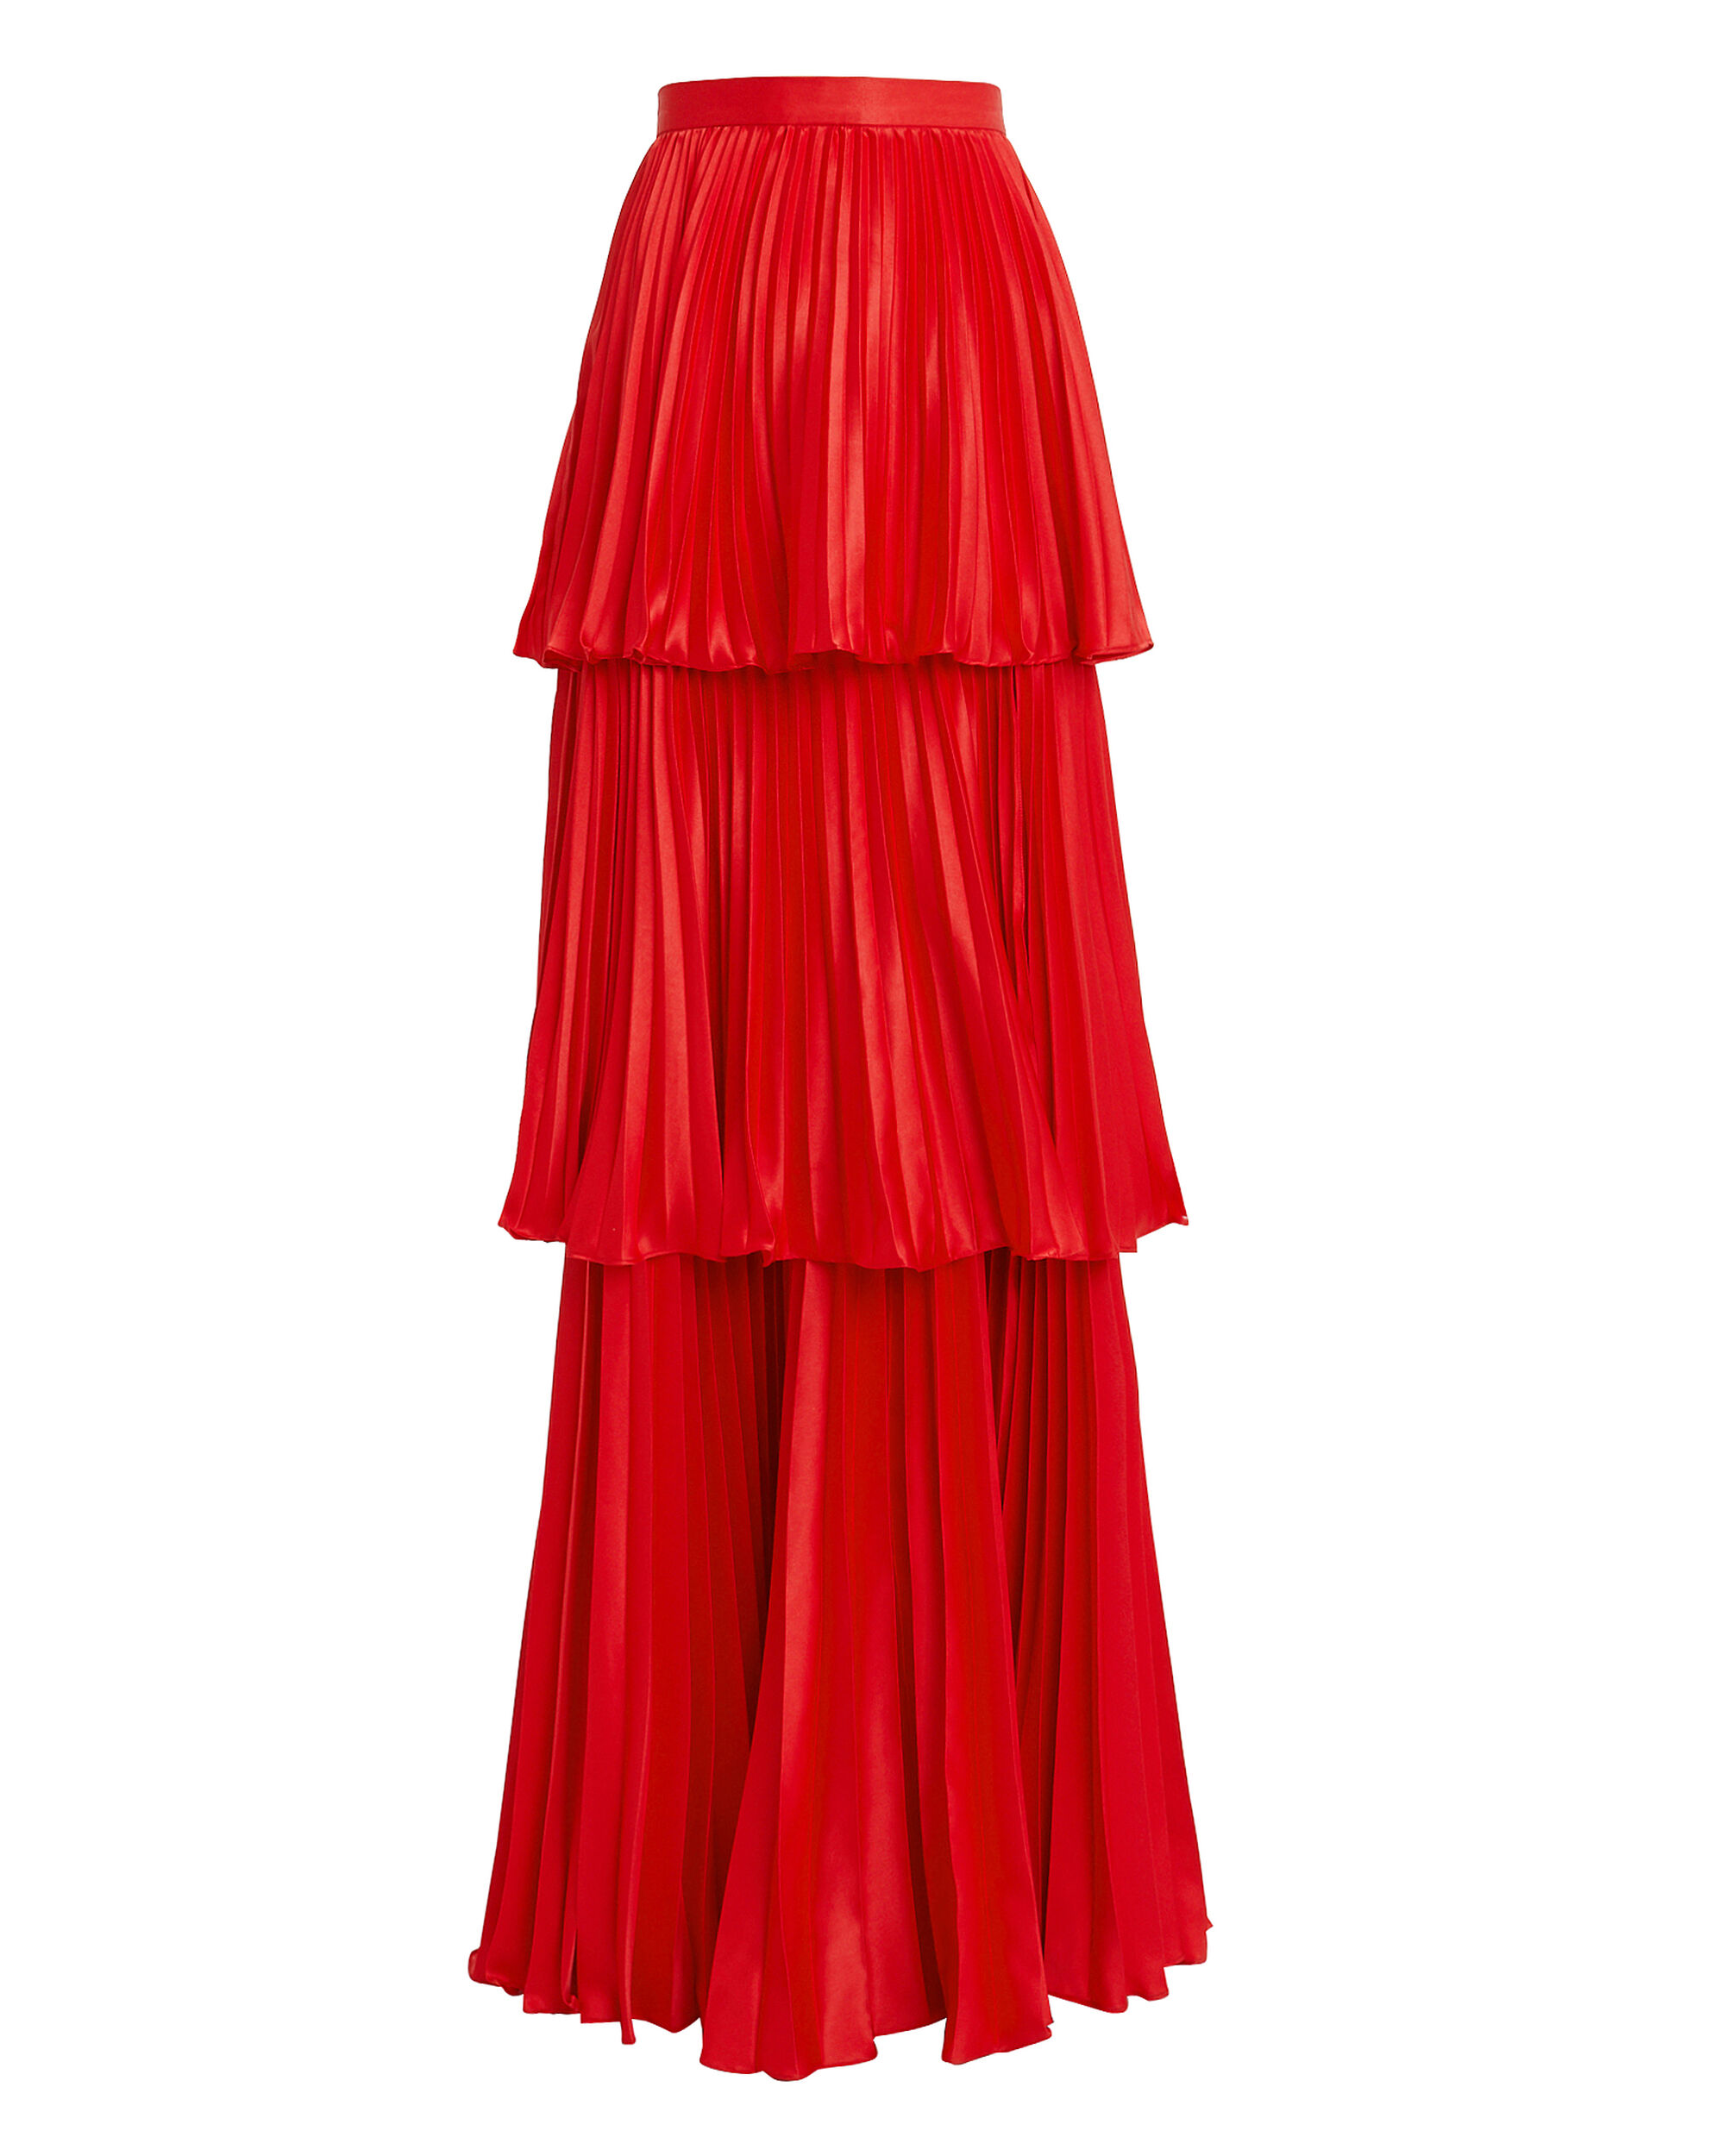 Eve Tiered Maxi Skirt, RED, hi-res